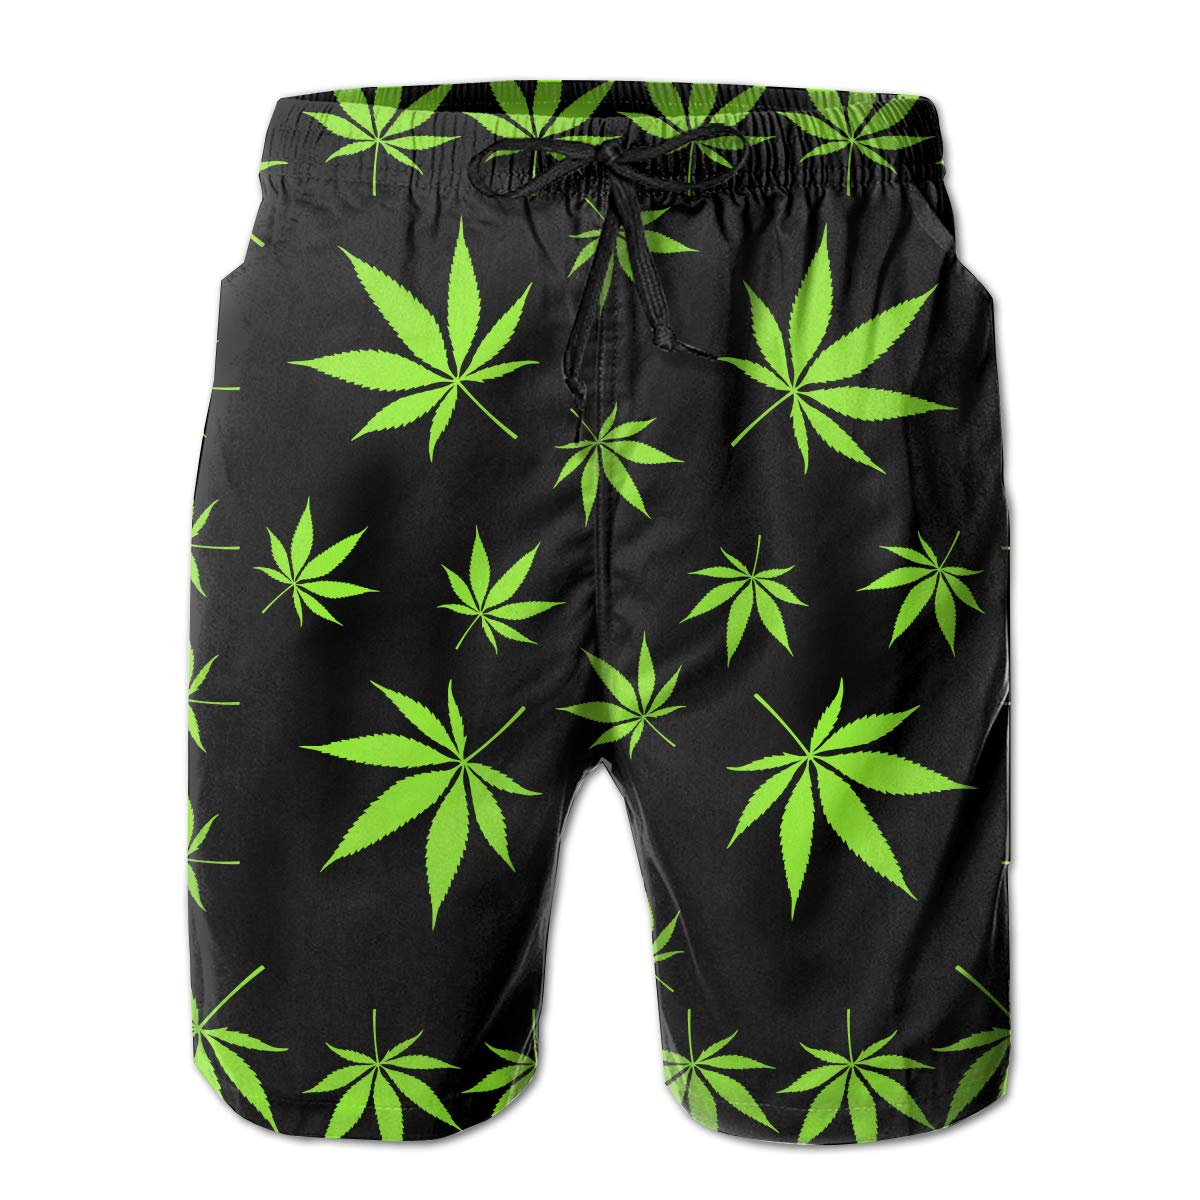 MikonsuPot Weed Leaves Cannabis Mens Beachwear Summer Holiday Swim Trunks